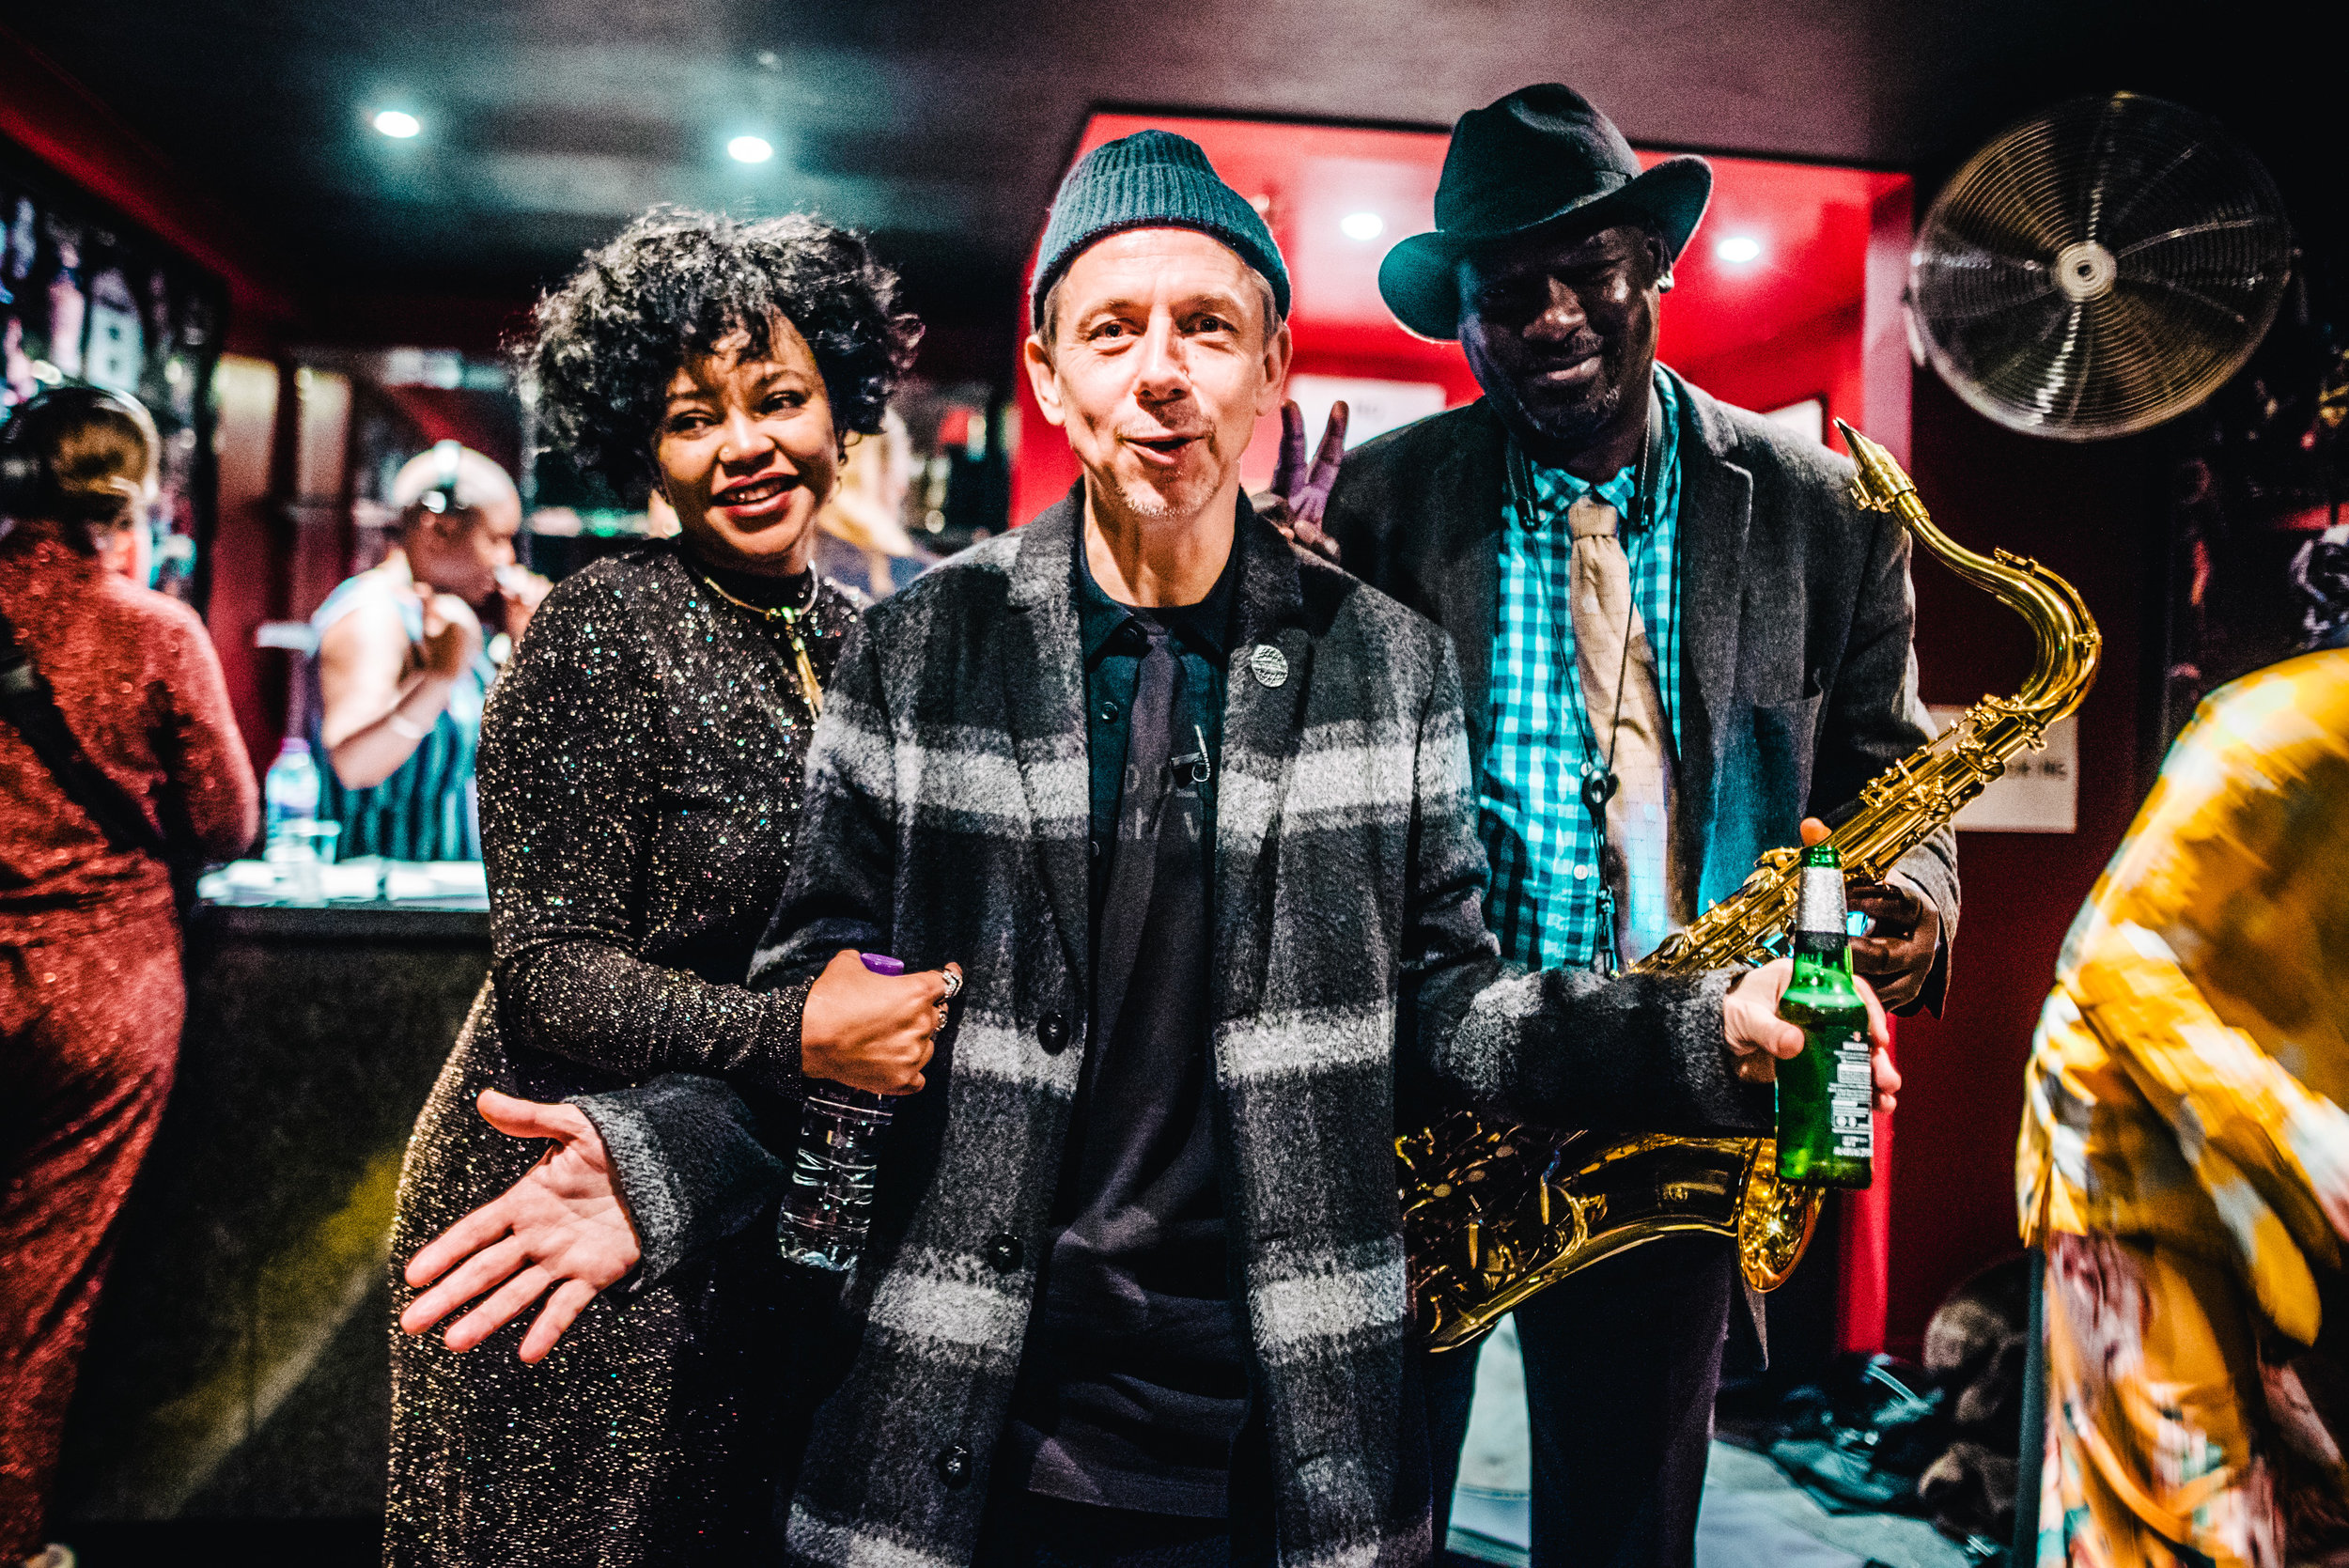 Gilles_Peterson_Worldwide_Awards_2019_January_2019_Rob_Jones_@hirobjones_ROB_2240.jpg